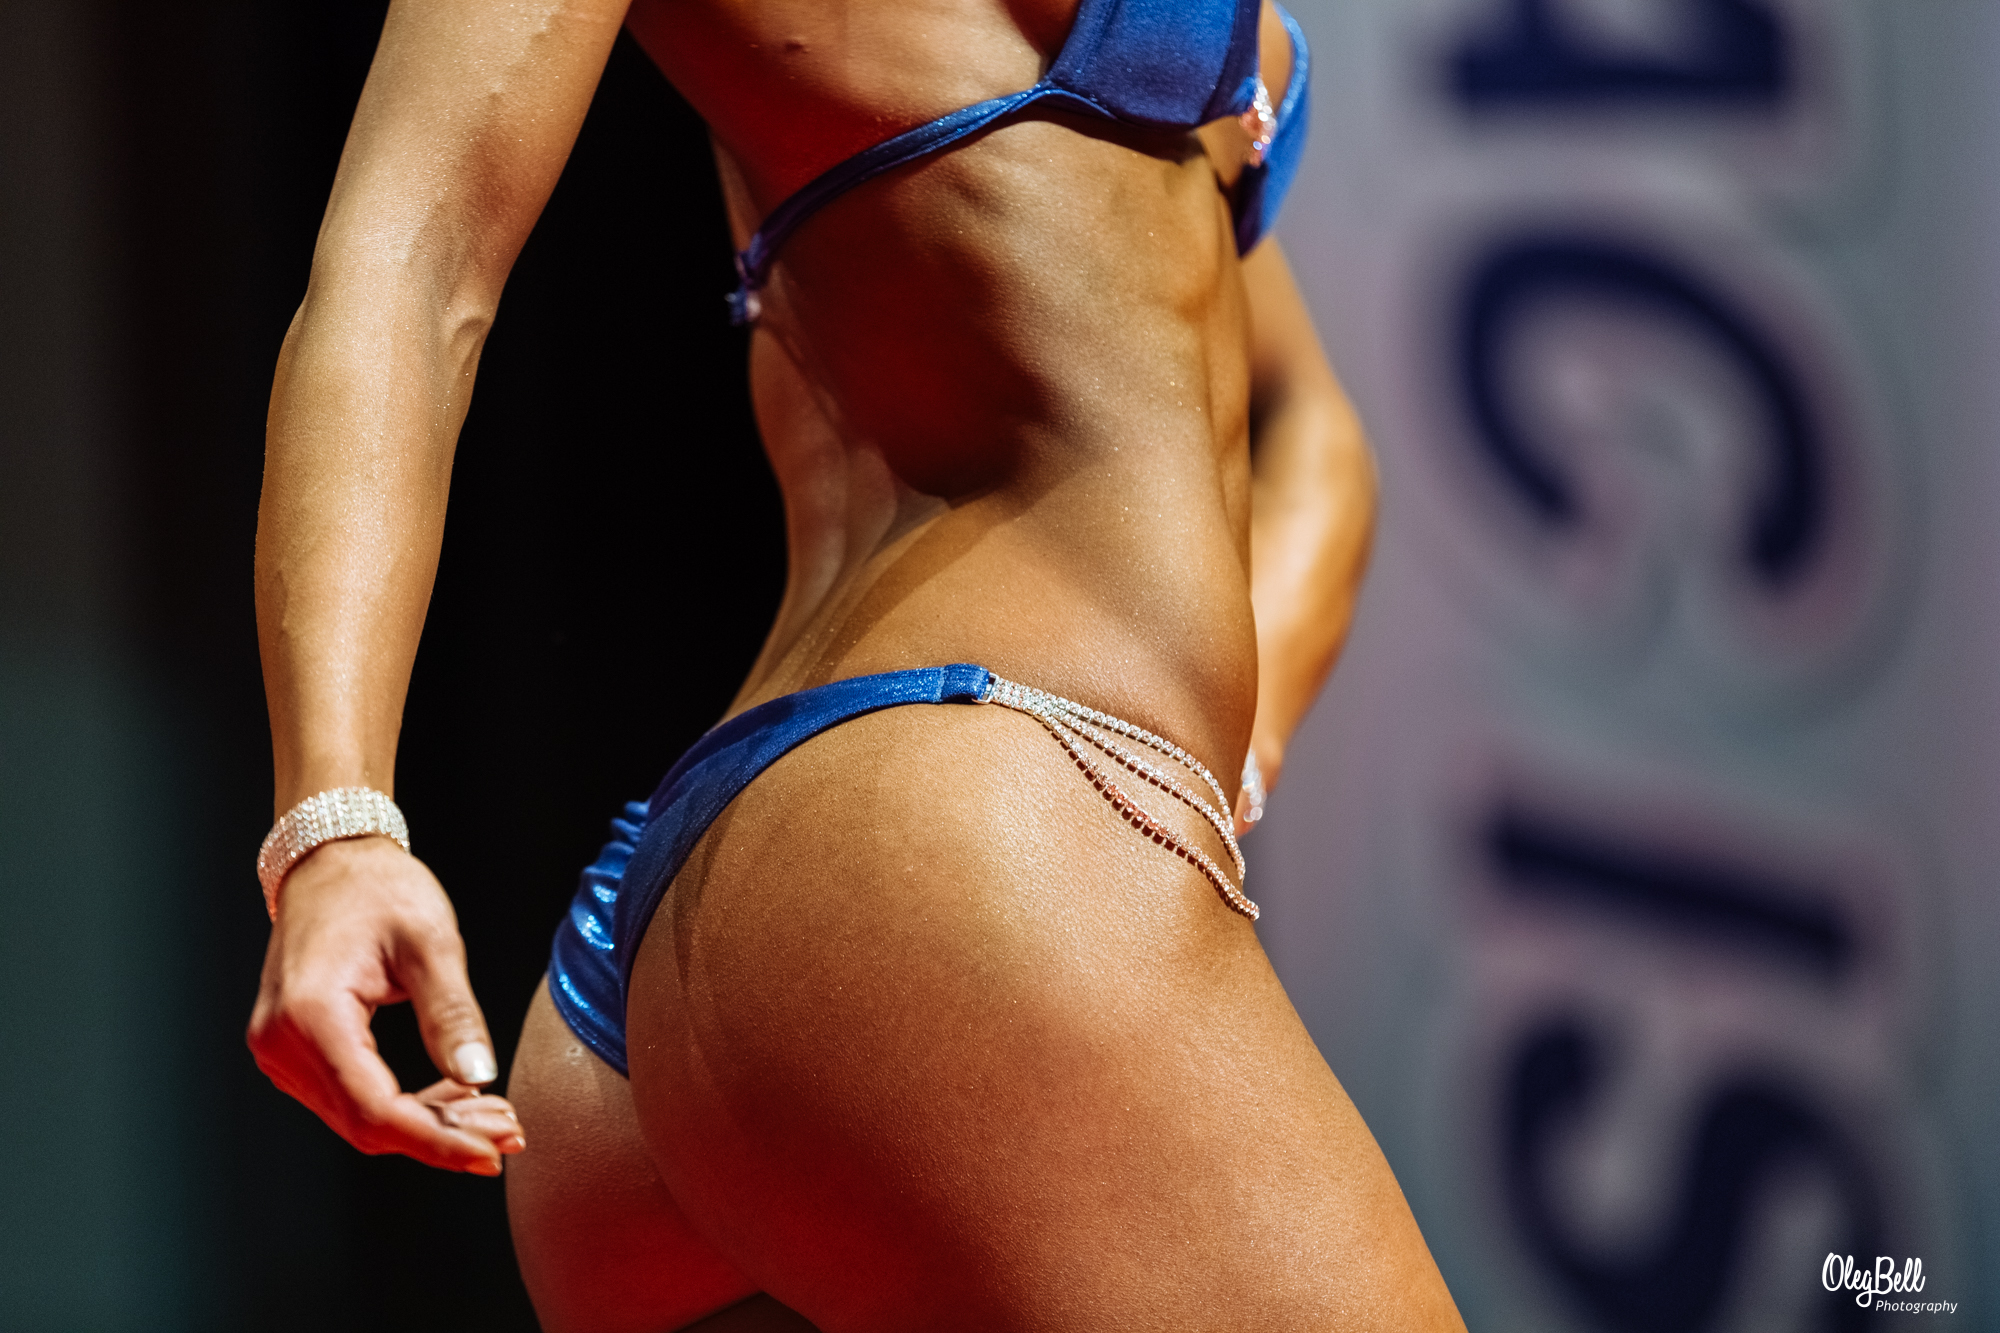 NICOLE_BODYBUILDING_COMPETITIONS_0122.jpg